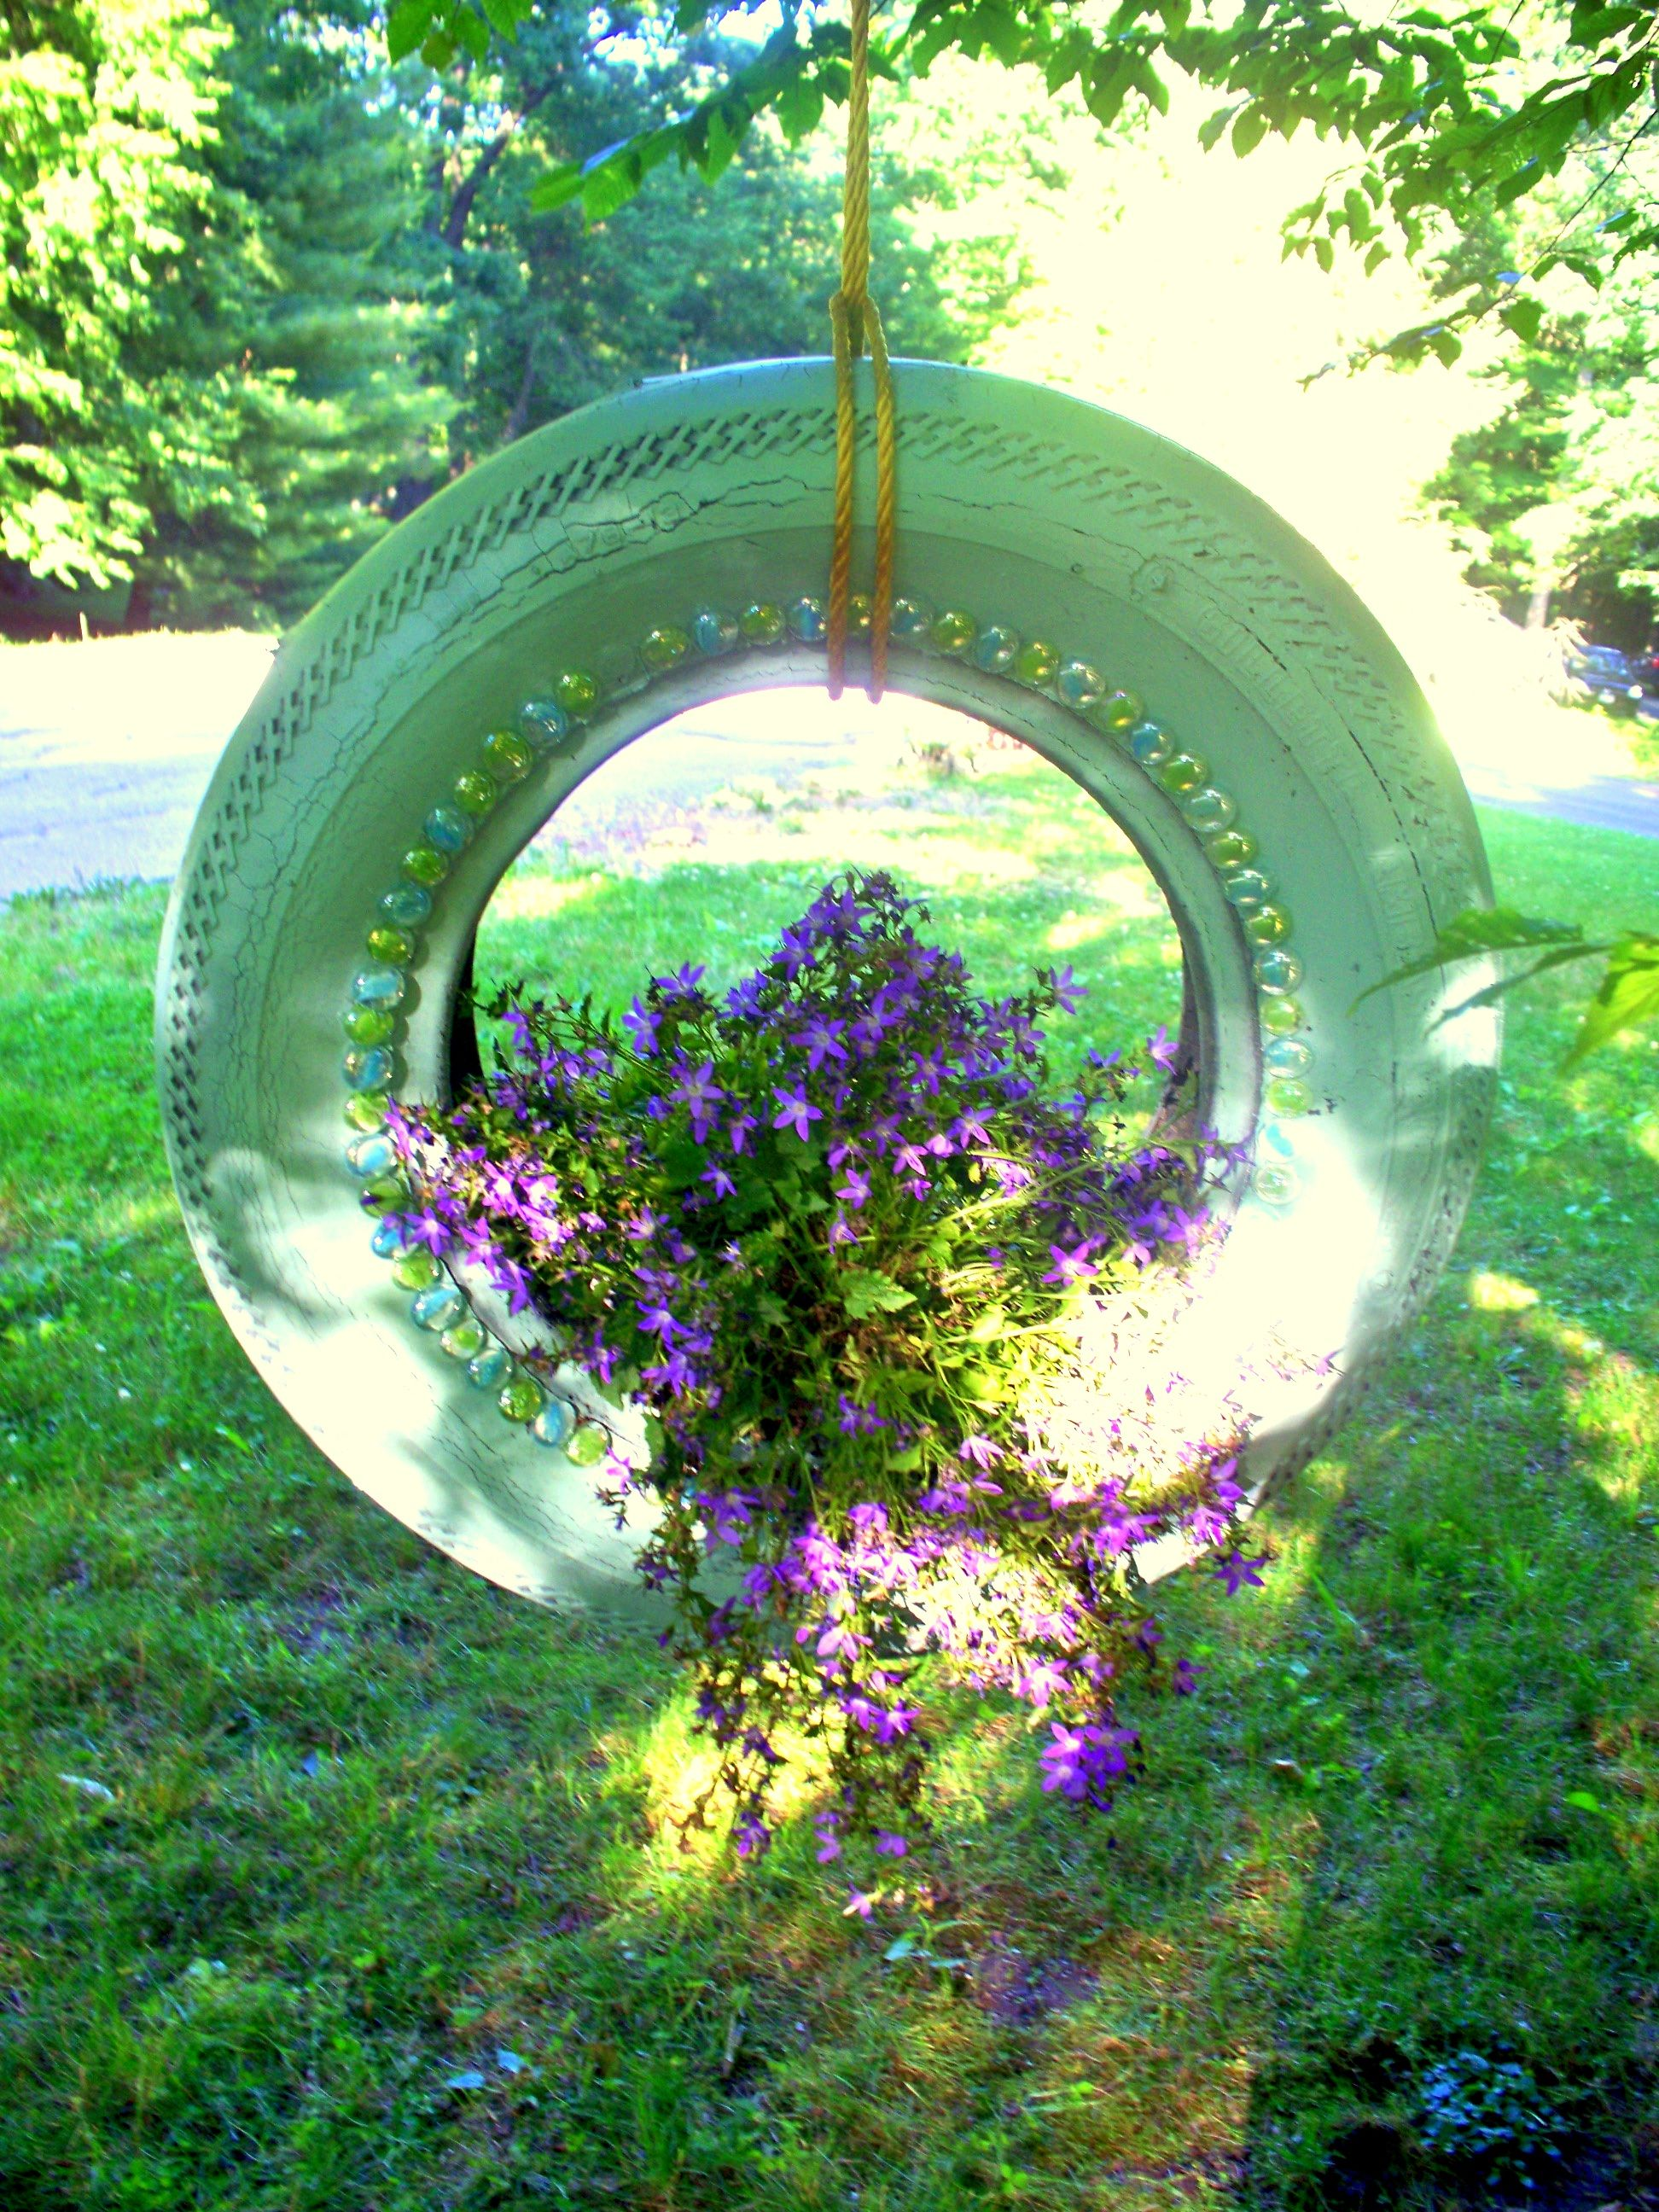 I Found This Tire In The Woods And I Spray Painted It, Added Garden Glass